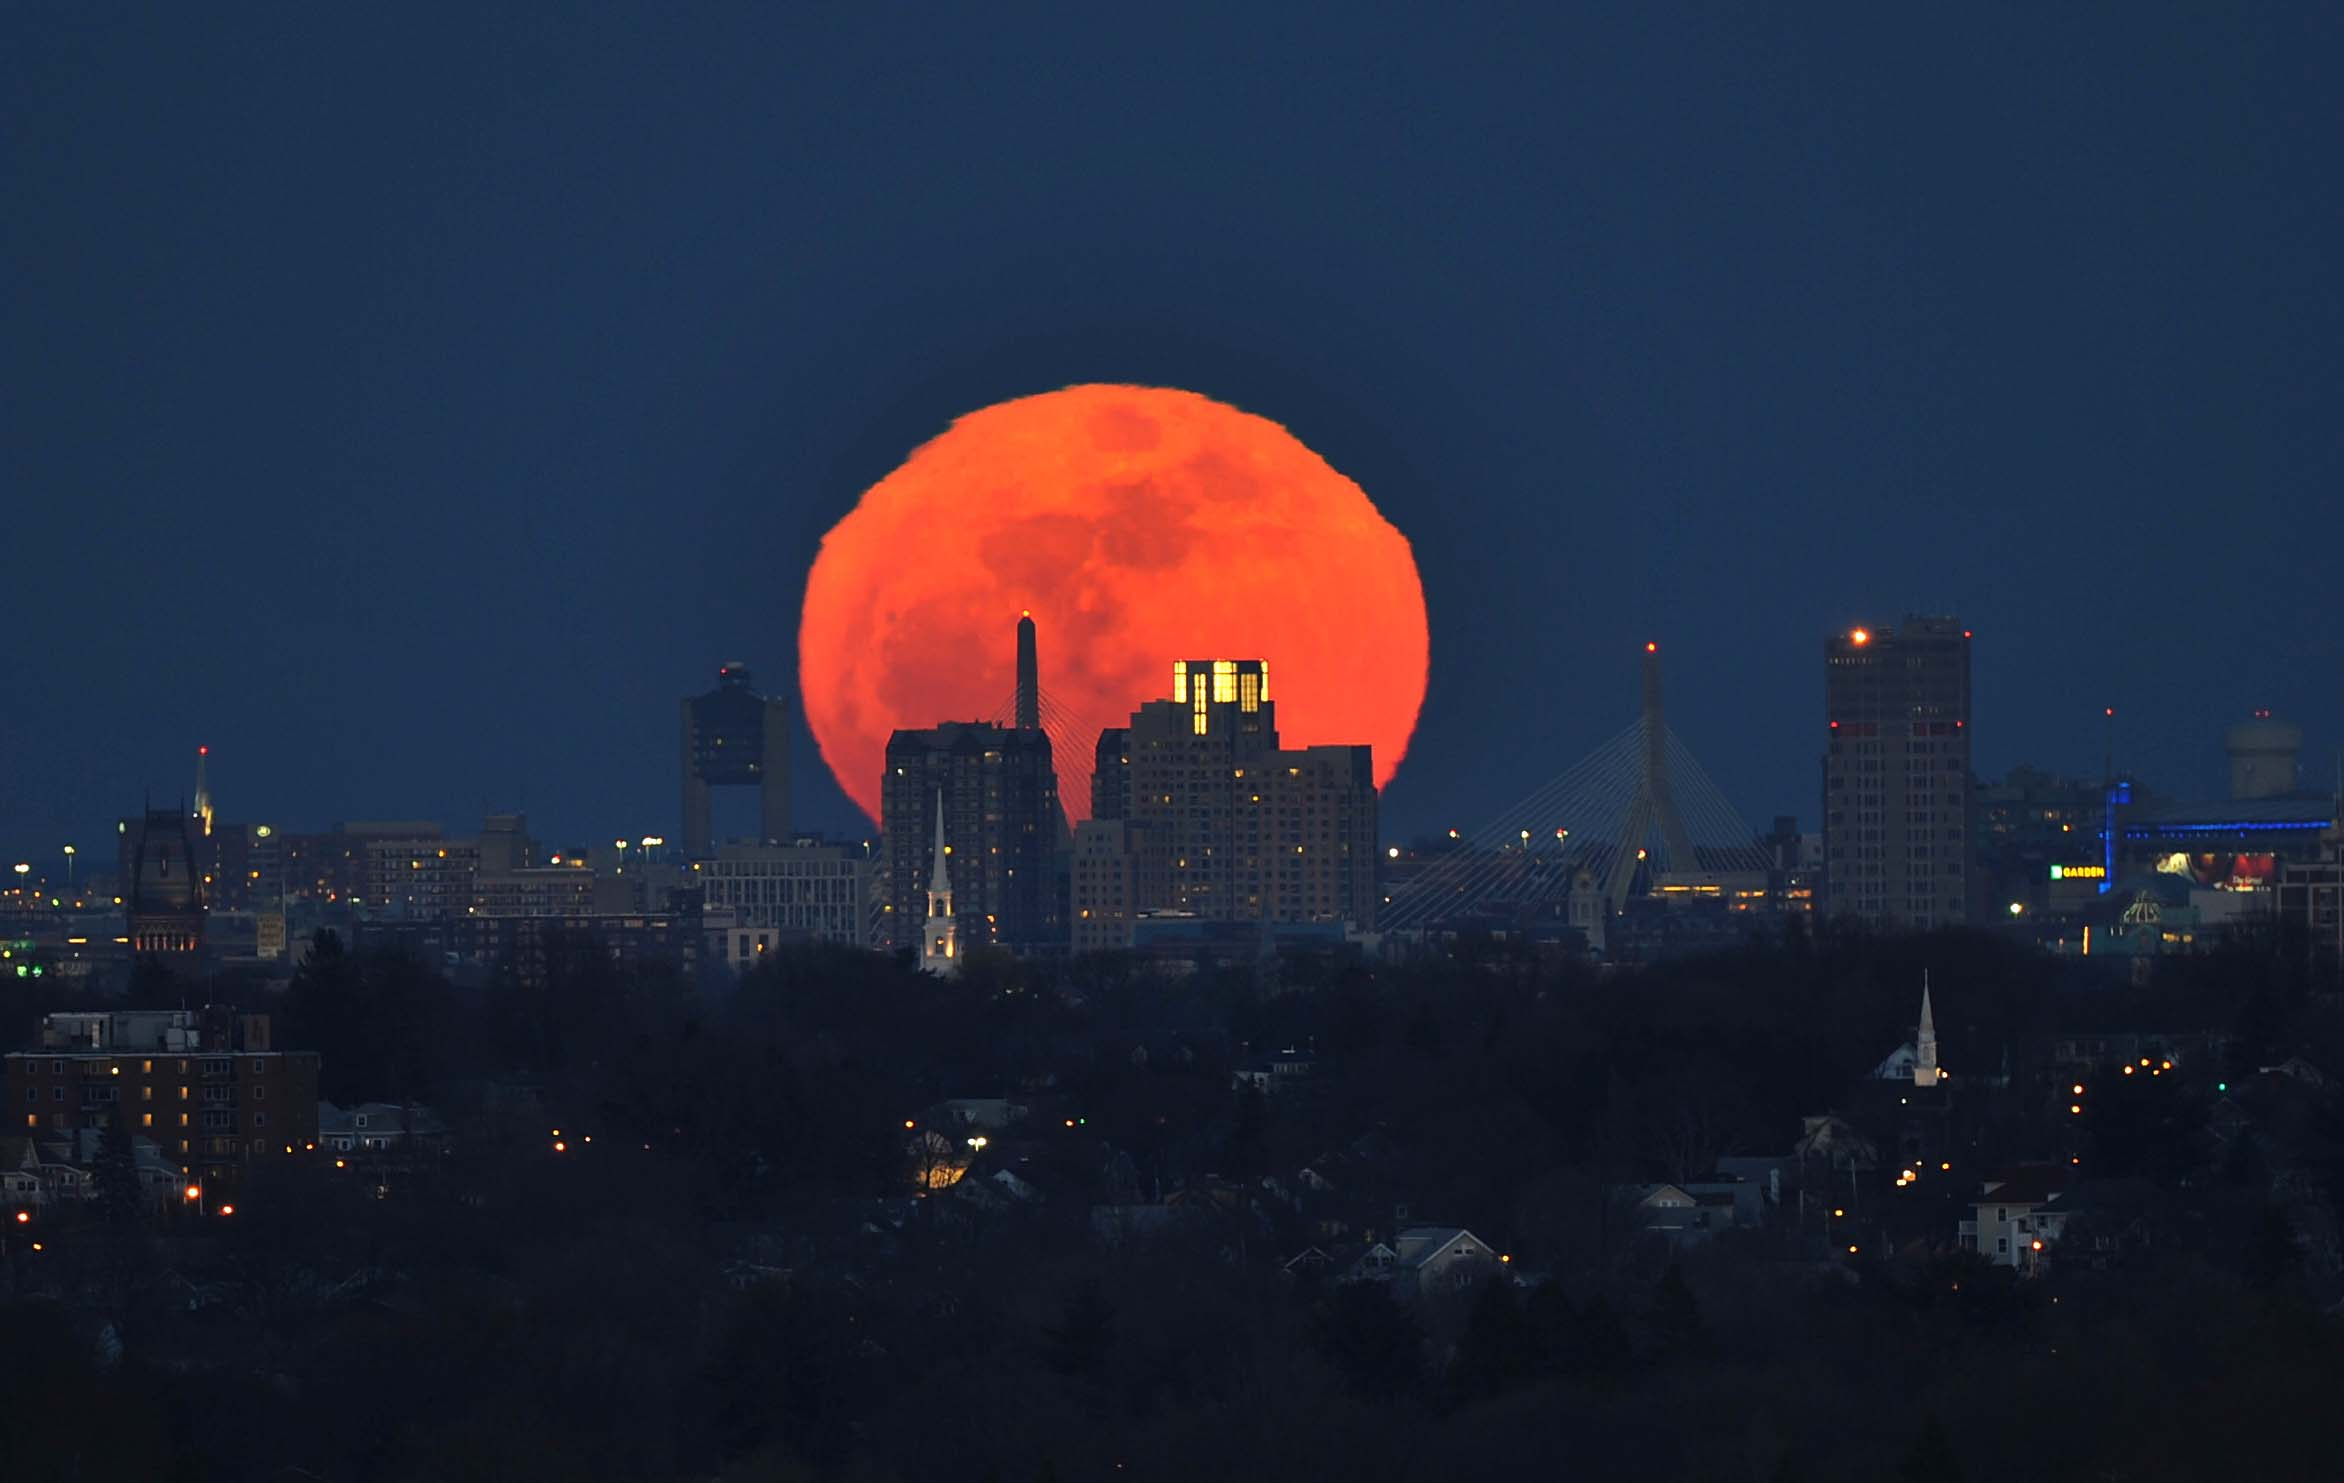 Moonrise on March 19, 2014